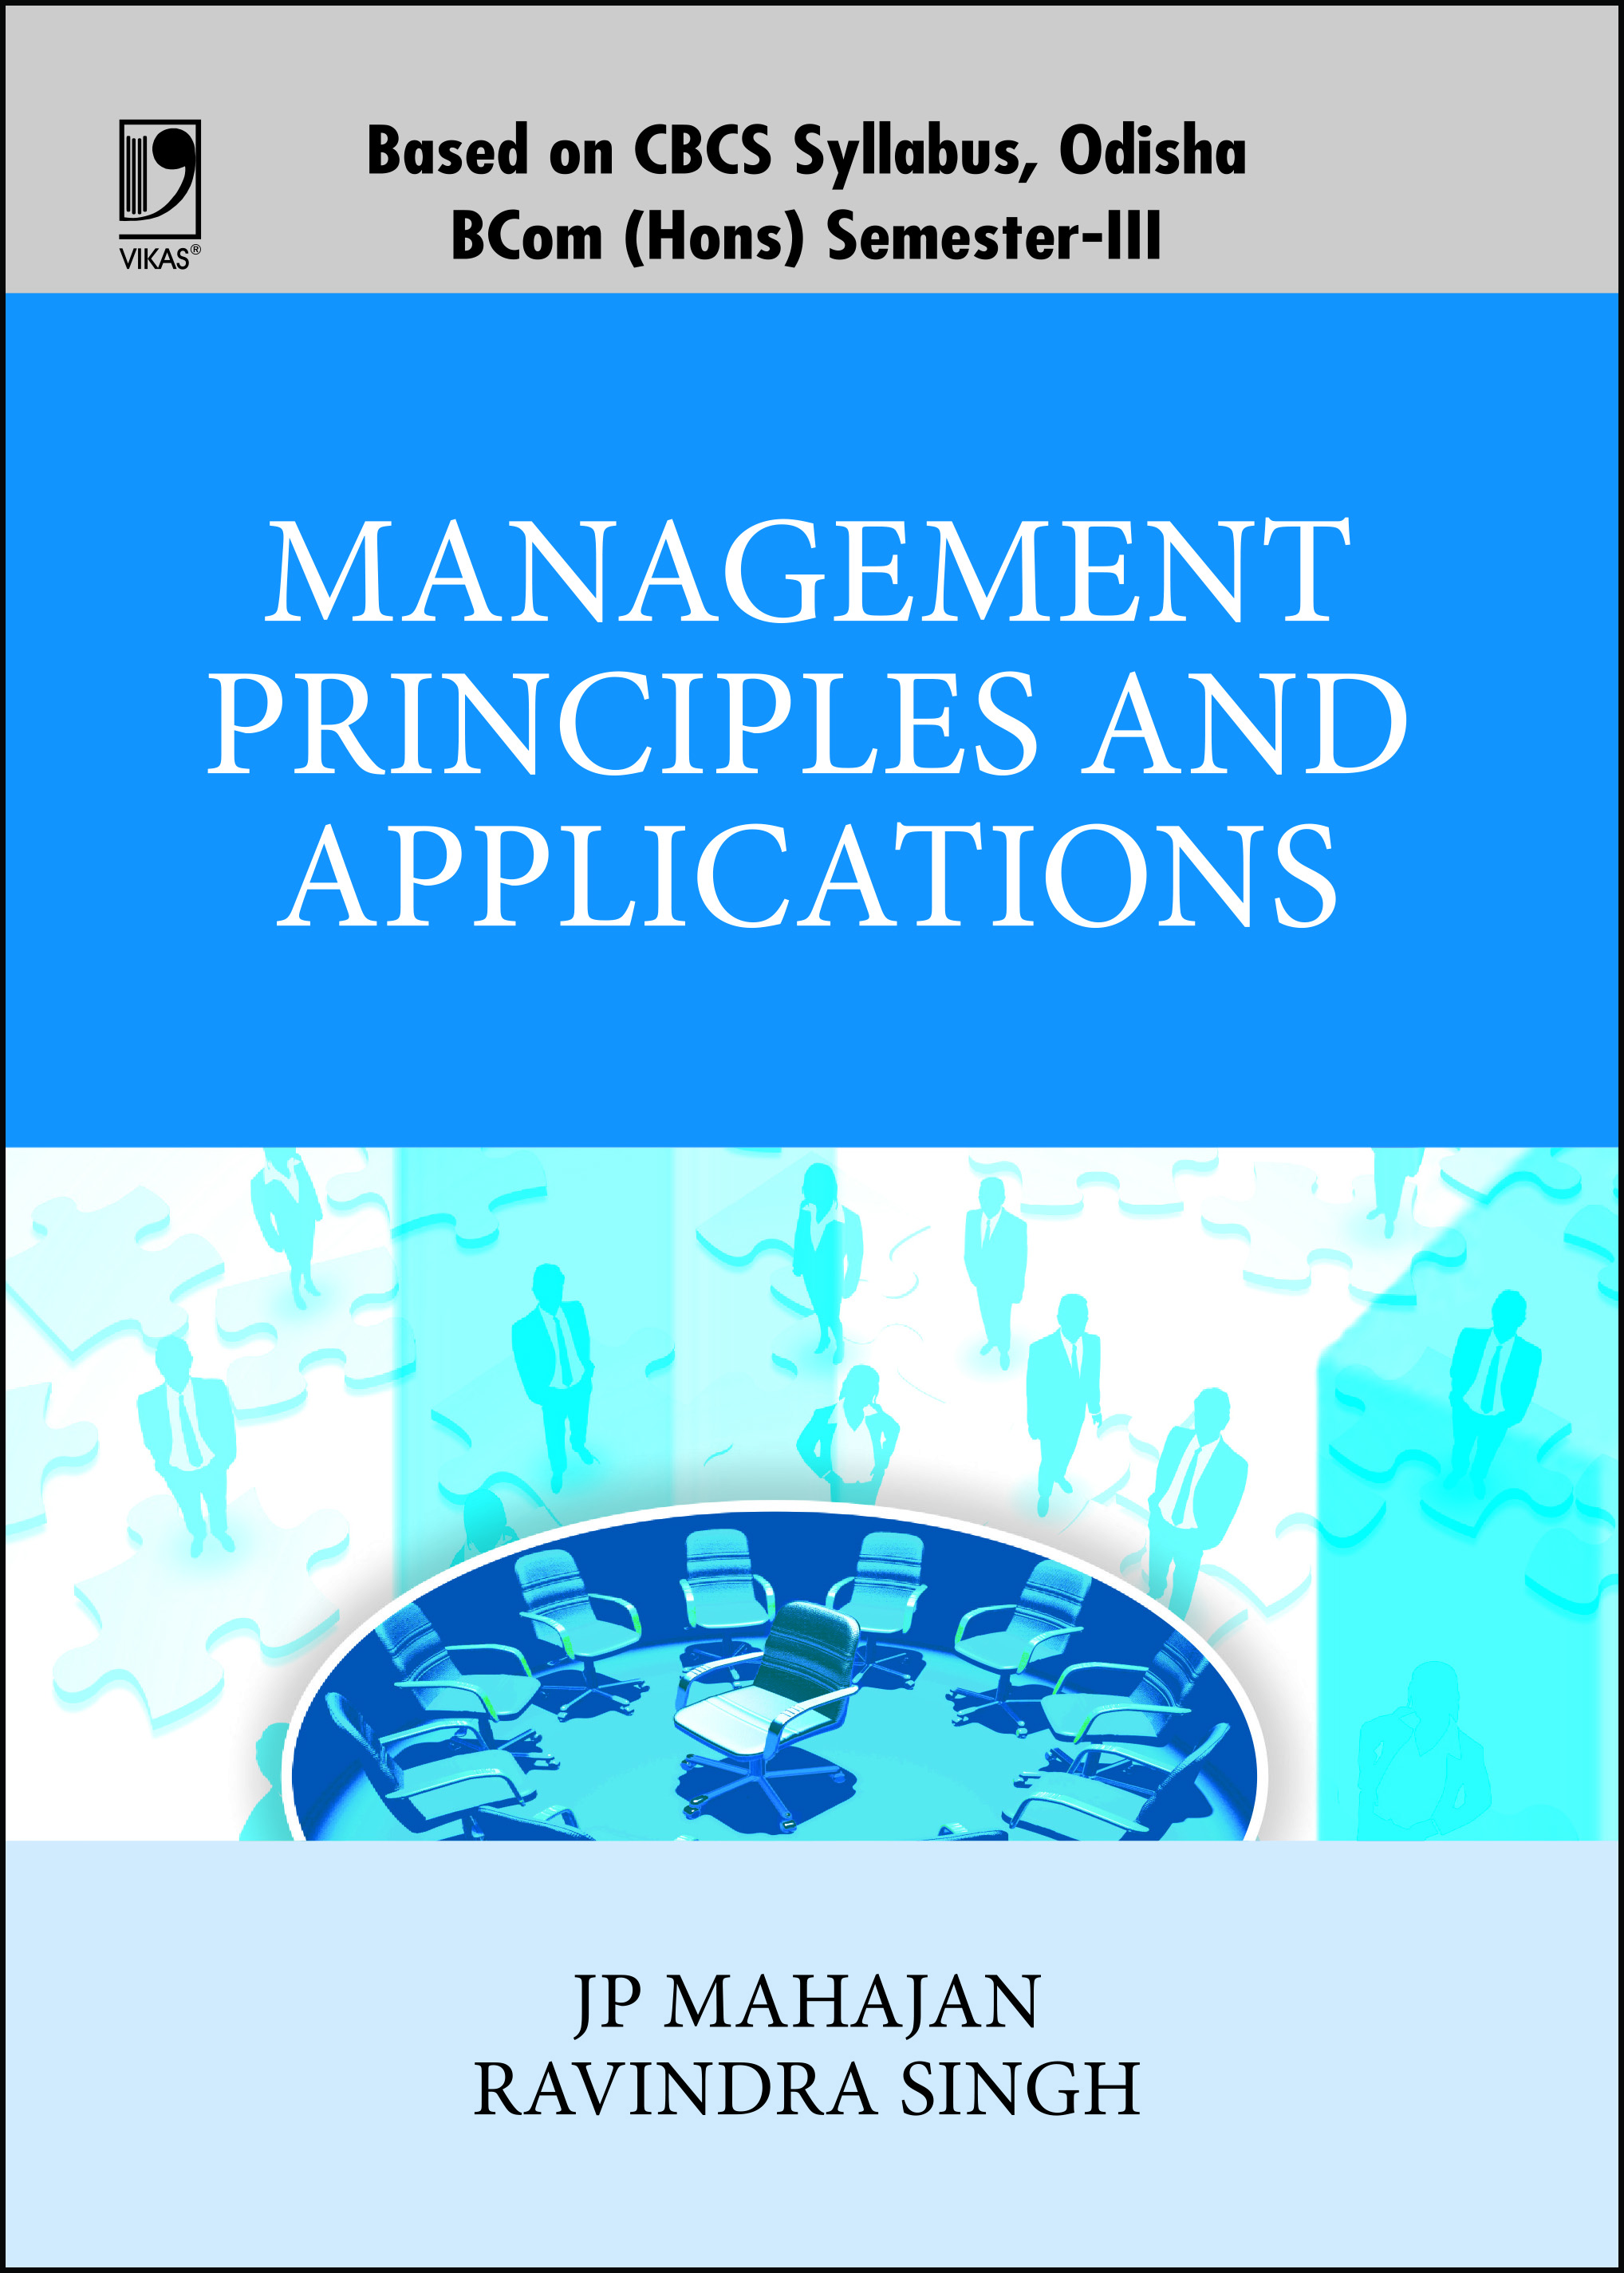 Management Principles and Applications (For B.Com. (Hons.) 3rd Semester, Odisha Universities) by  J P Mahajan